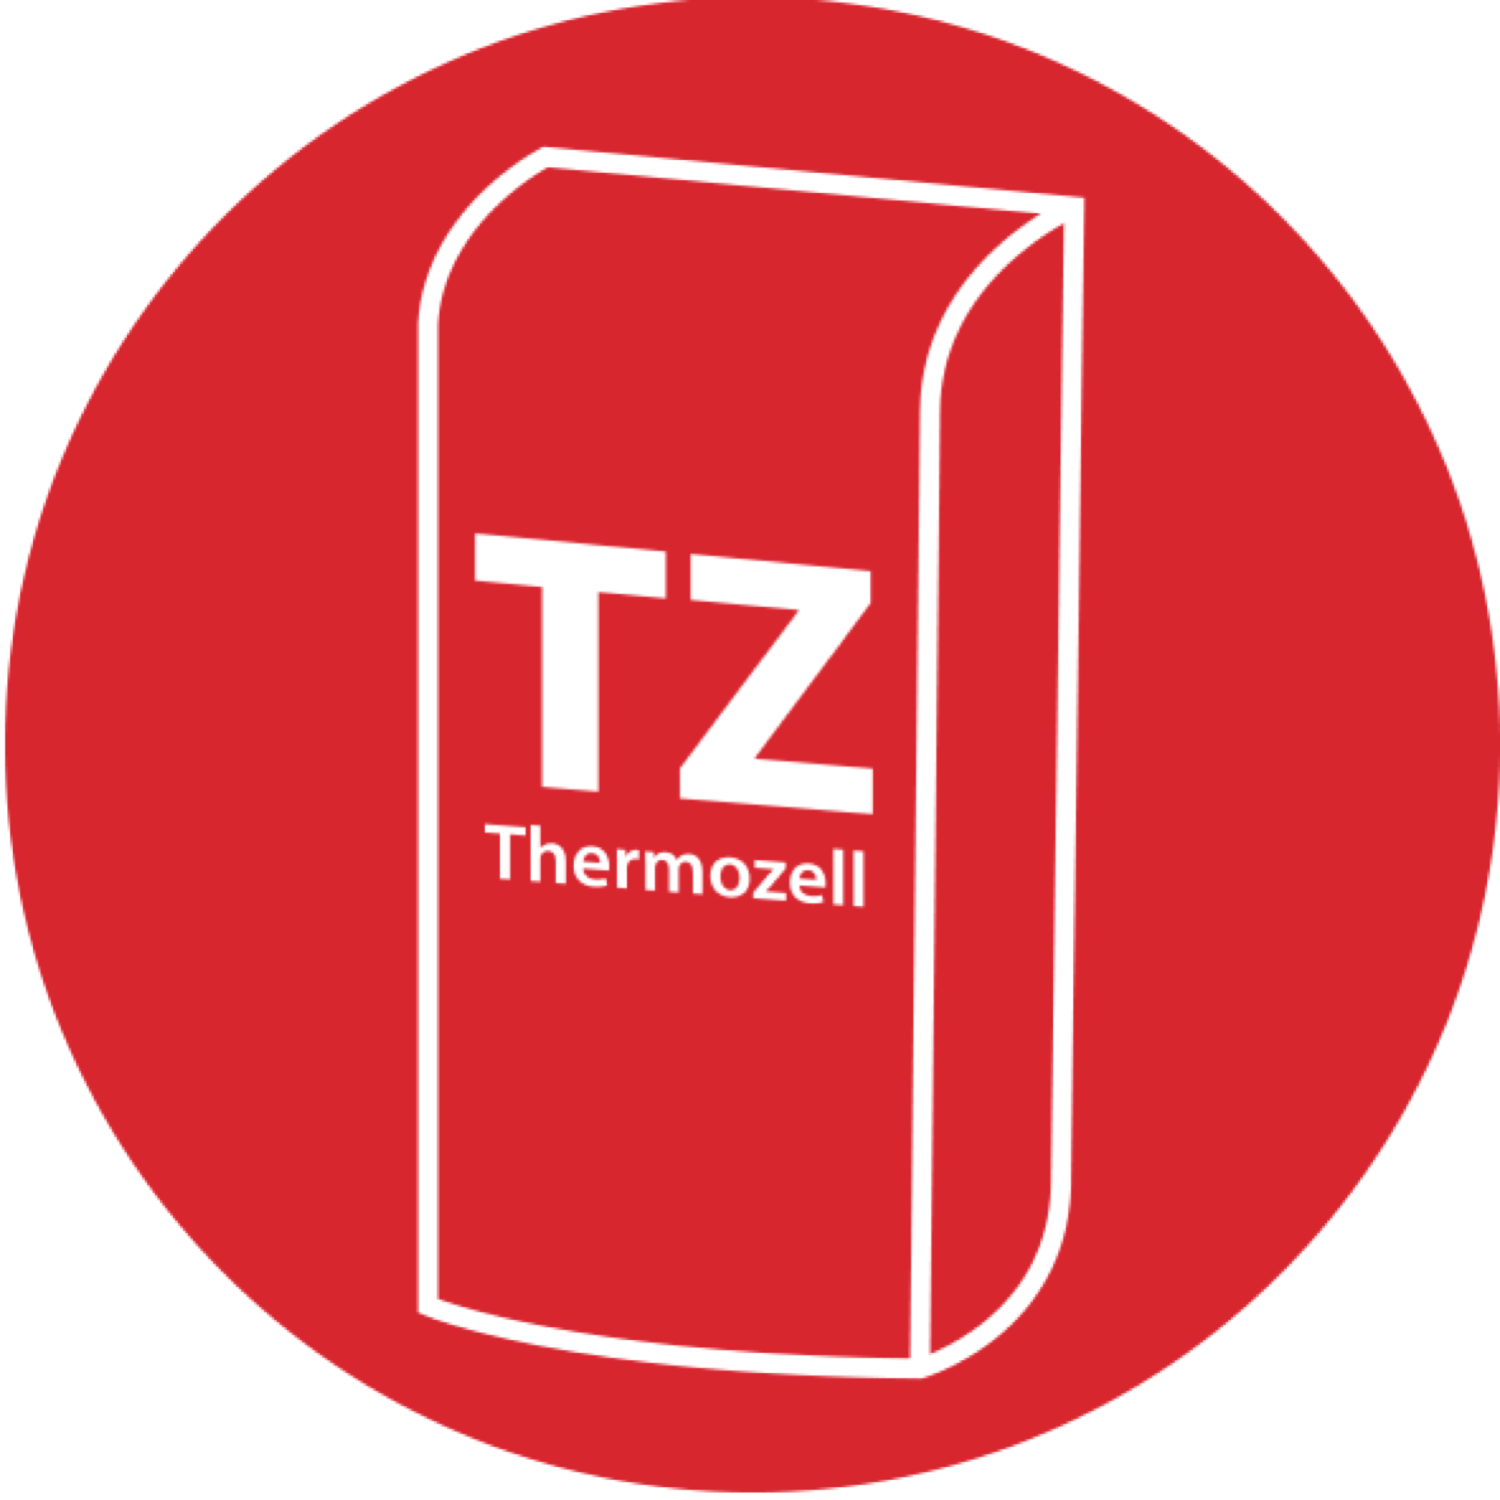 Thermozell product